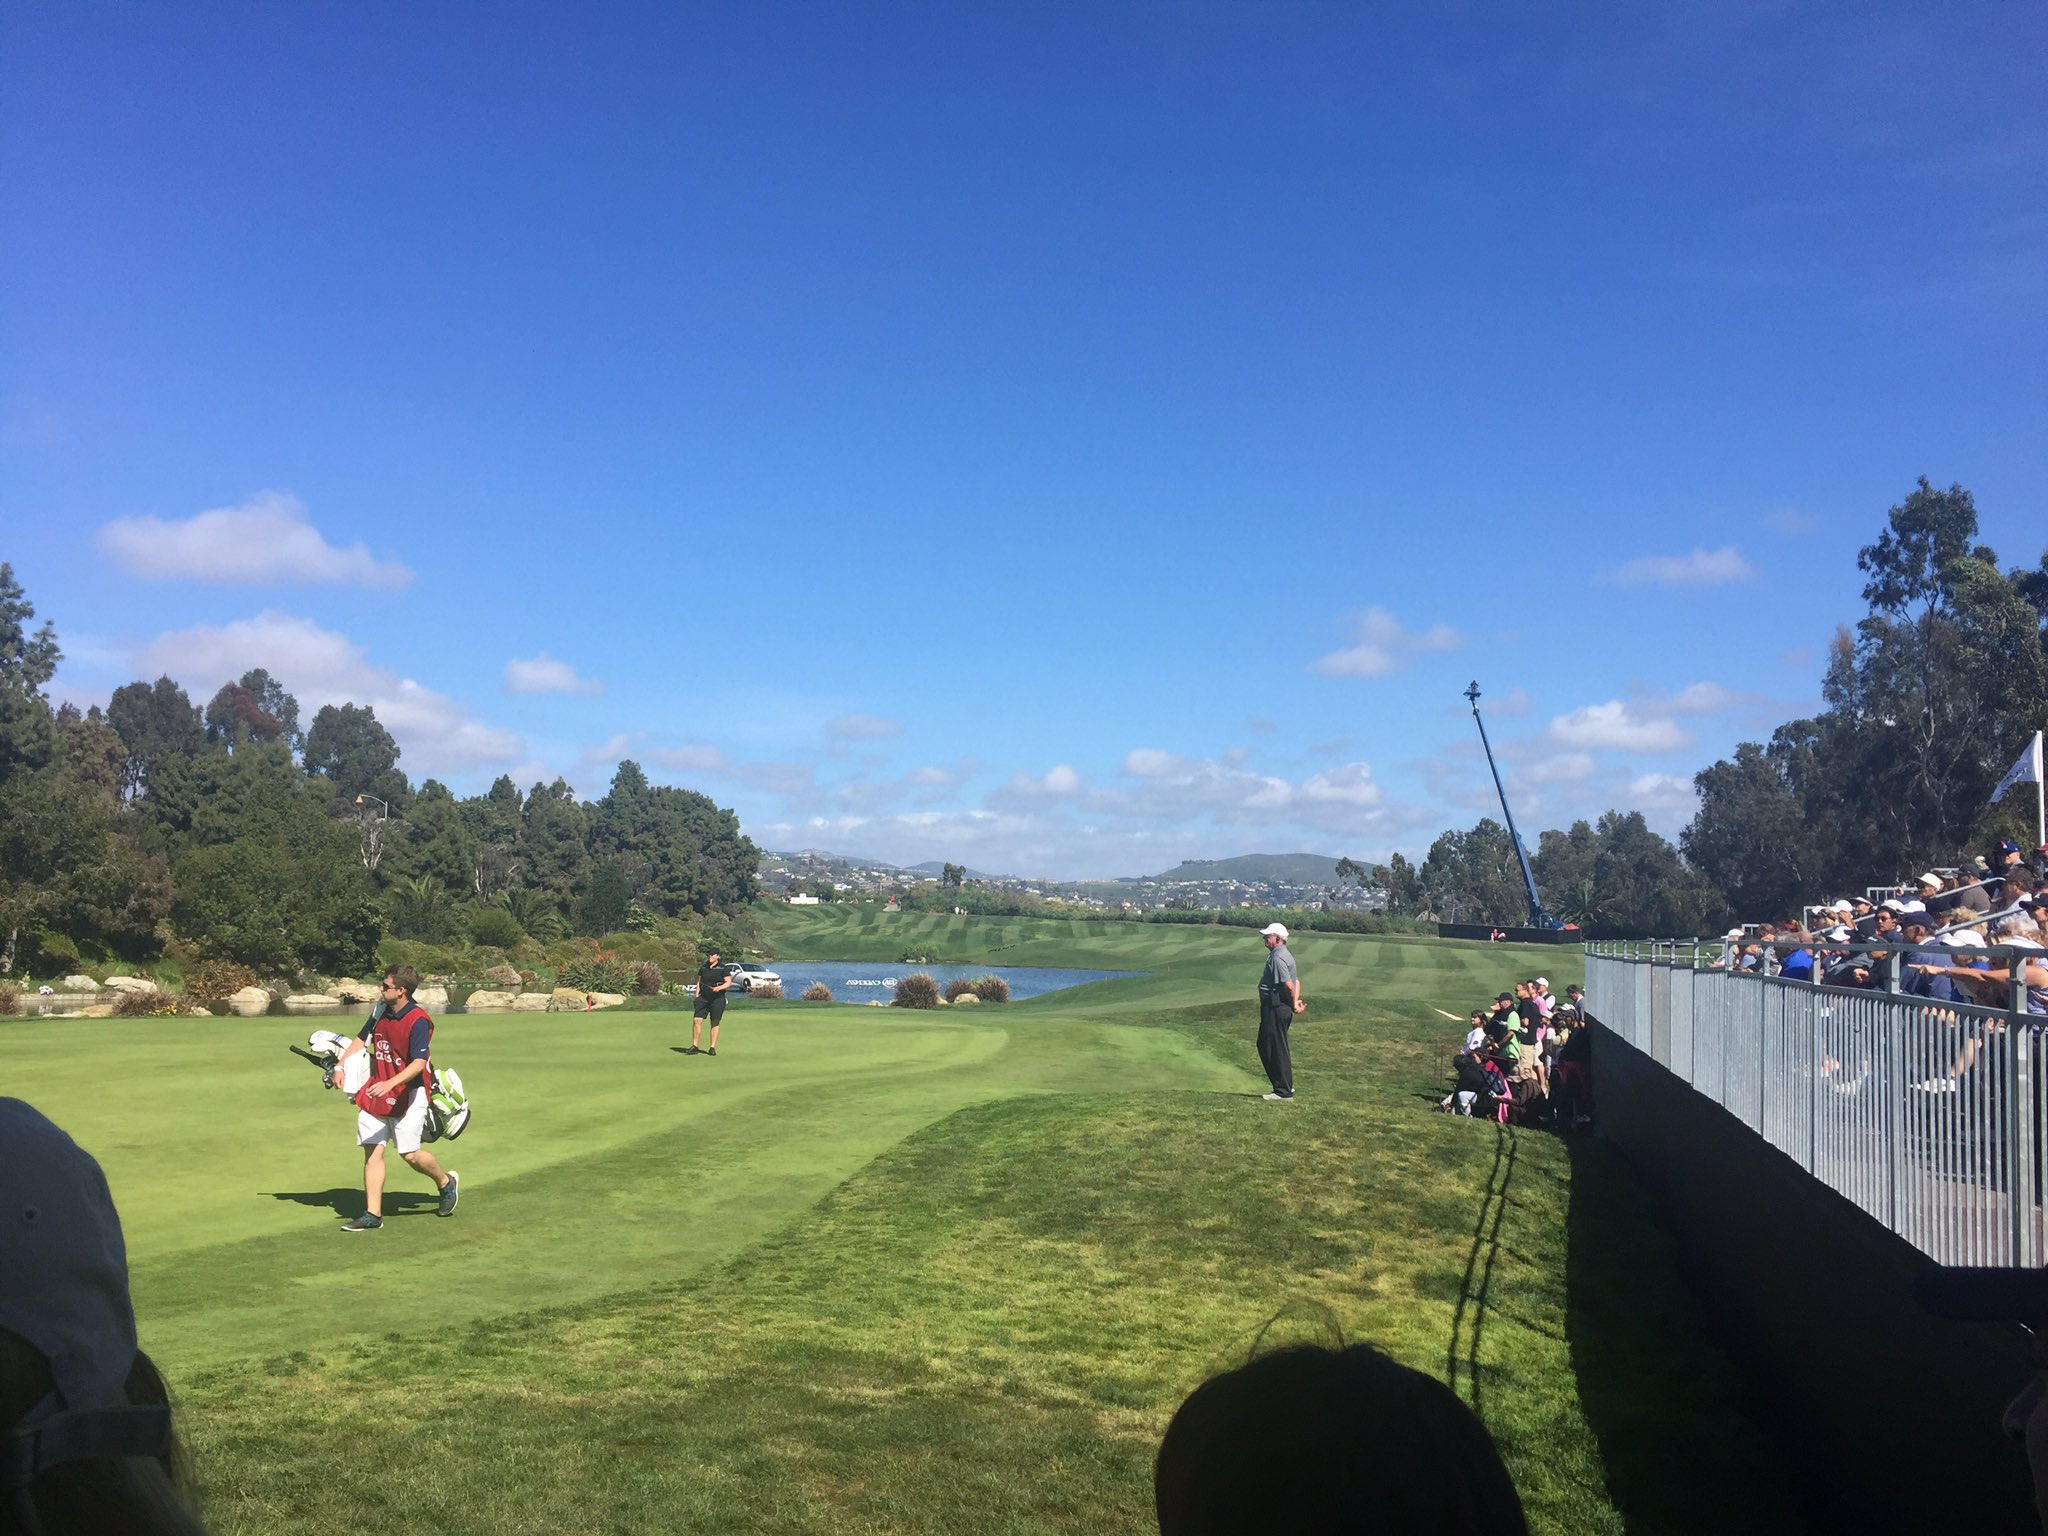 Final round at the #kiaclassic ...can't get over how gorgeous this course is....@ParkHyattAviara @fox5sandiego https://t.co/VPyHxoLXpJ